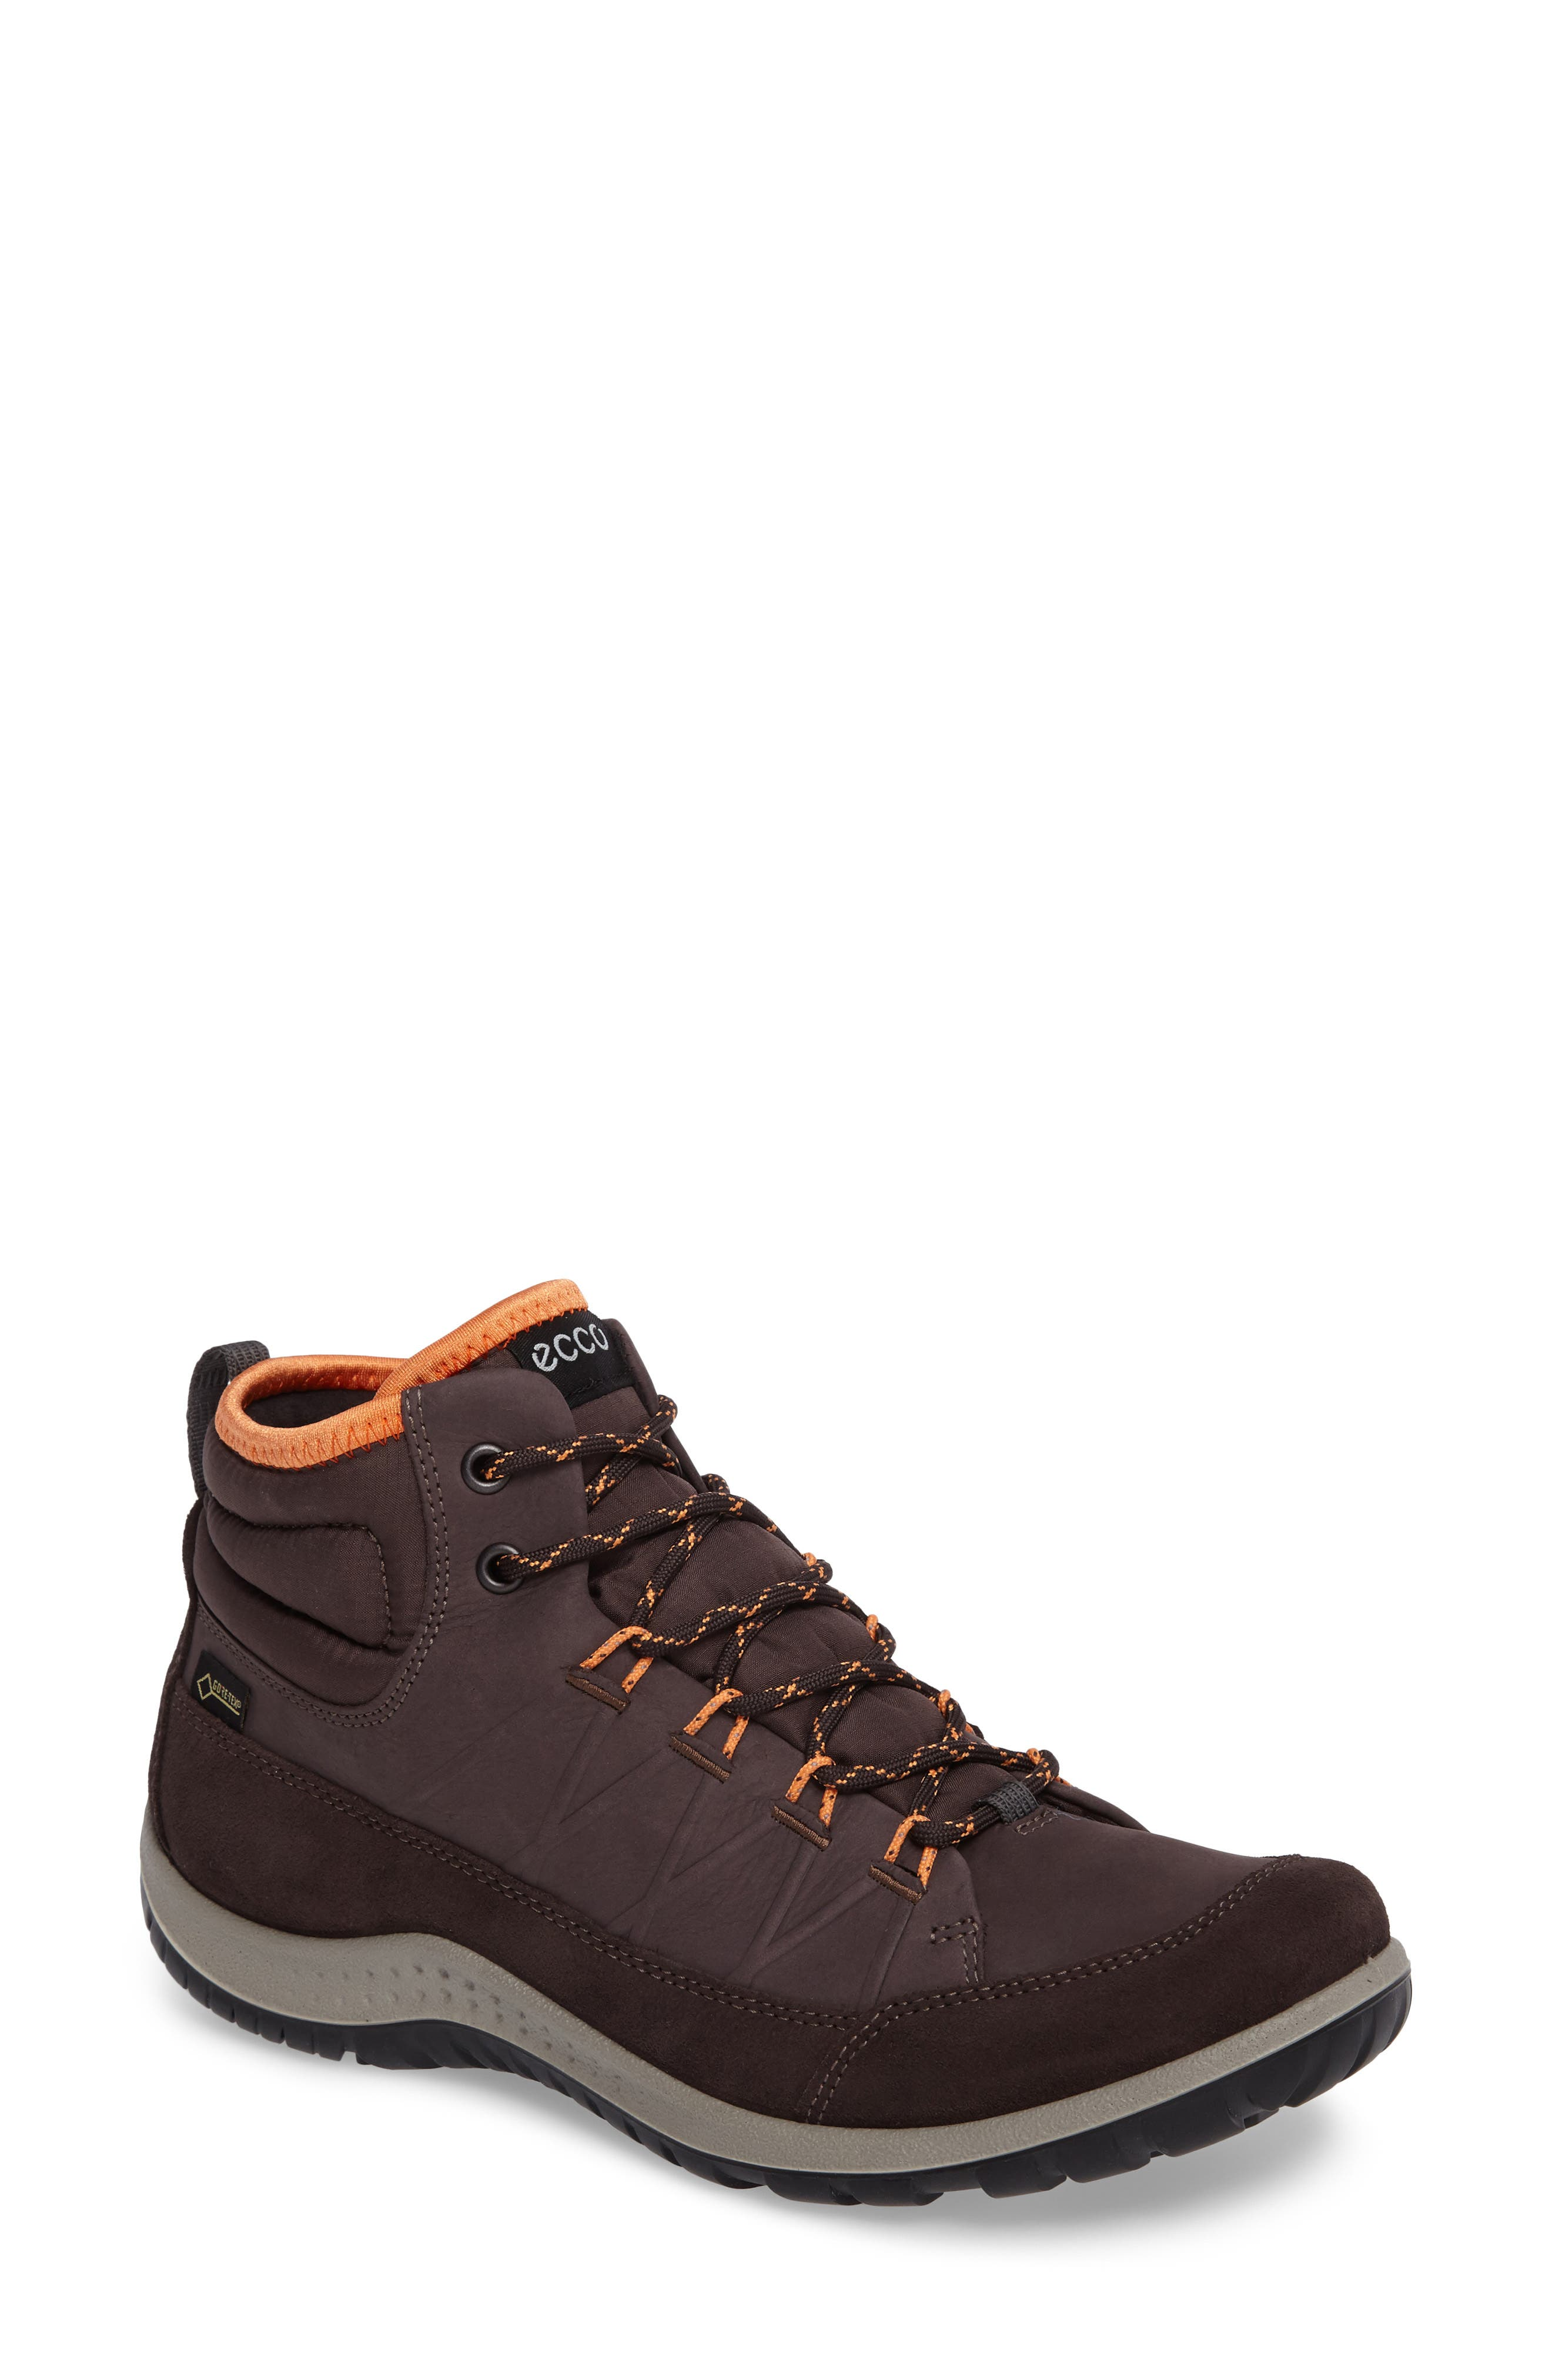 'Aspina GTX' Waterproof High Top Shoe,                             Main thumbnail 1, color,                             SHALE LEATHER